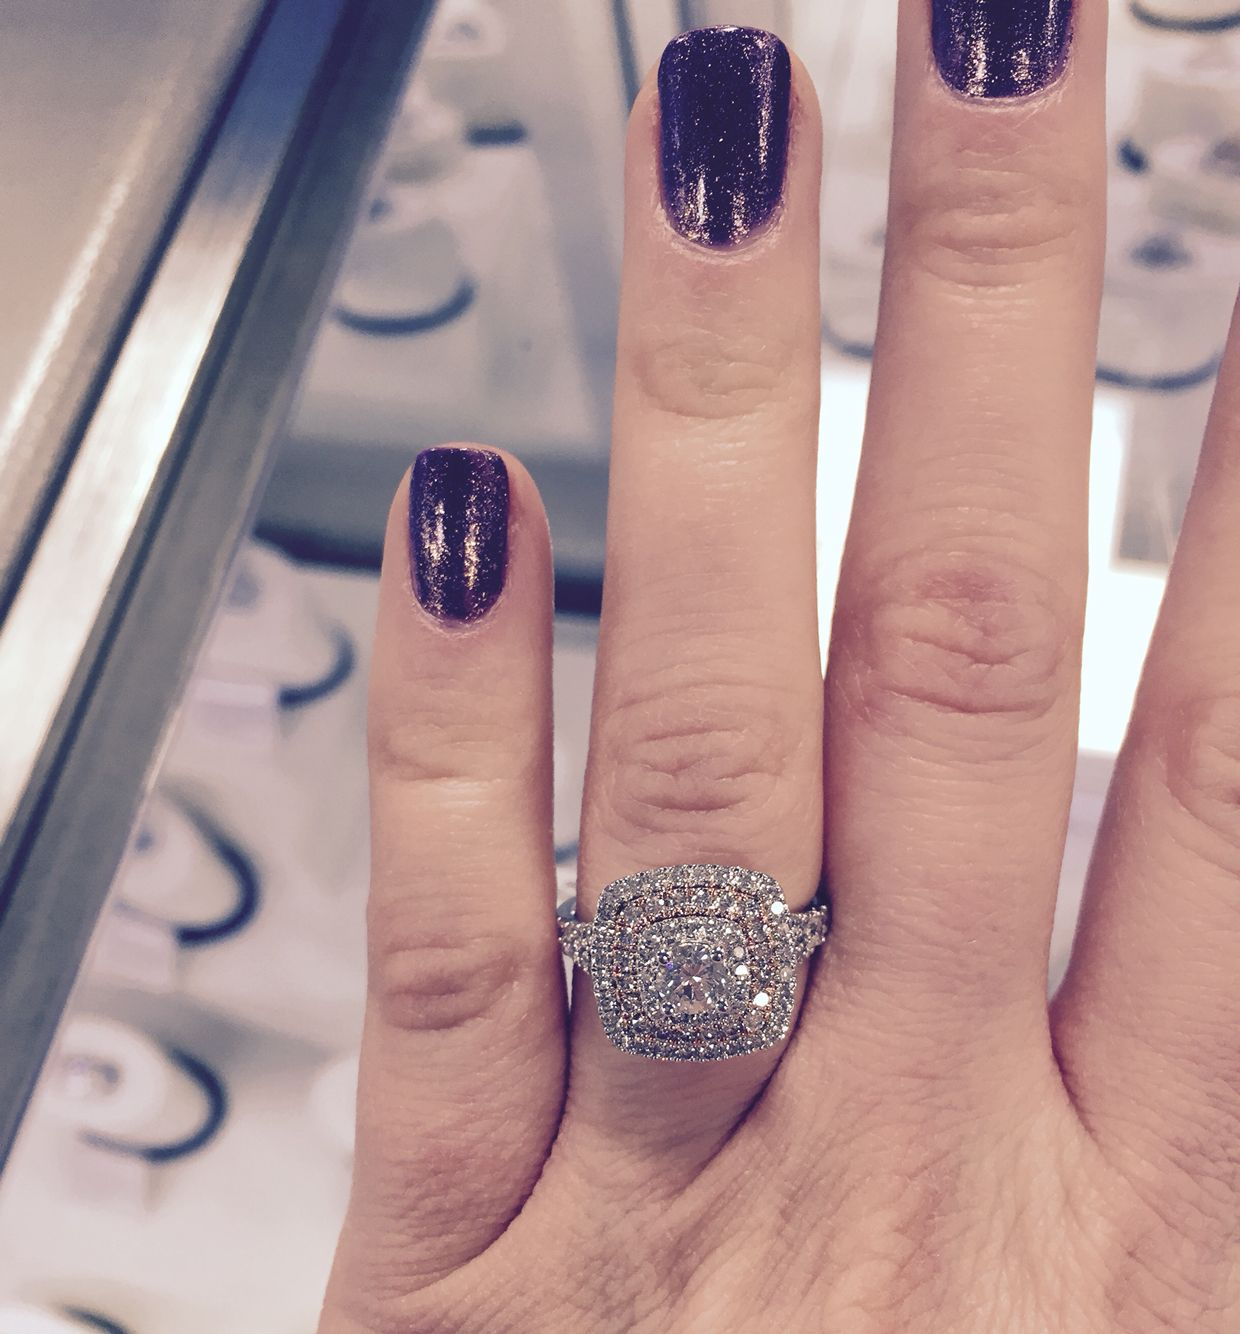 Single Center Bridal 1 41 Cttw I I1 Igi 14 Karat Two Toned 1 999 Sams Club This Ring Minus The Rose Gold E Ring Upgrade Hand Candy Wedding Bands